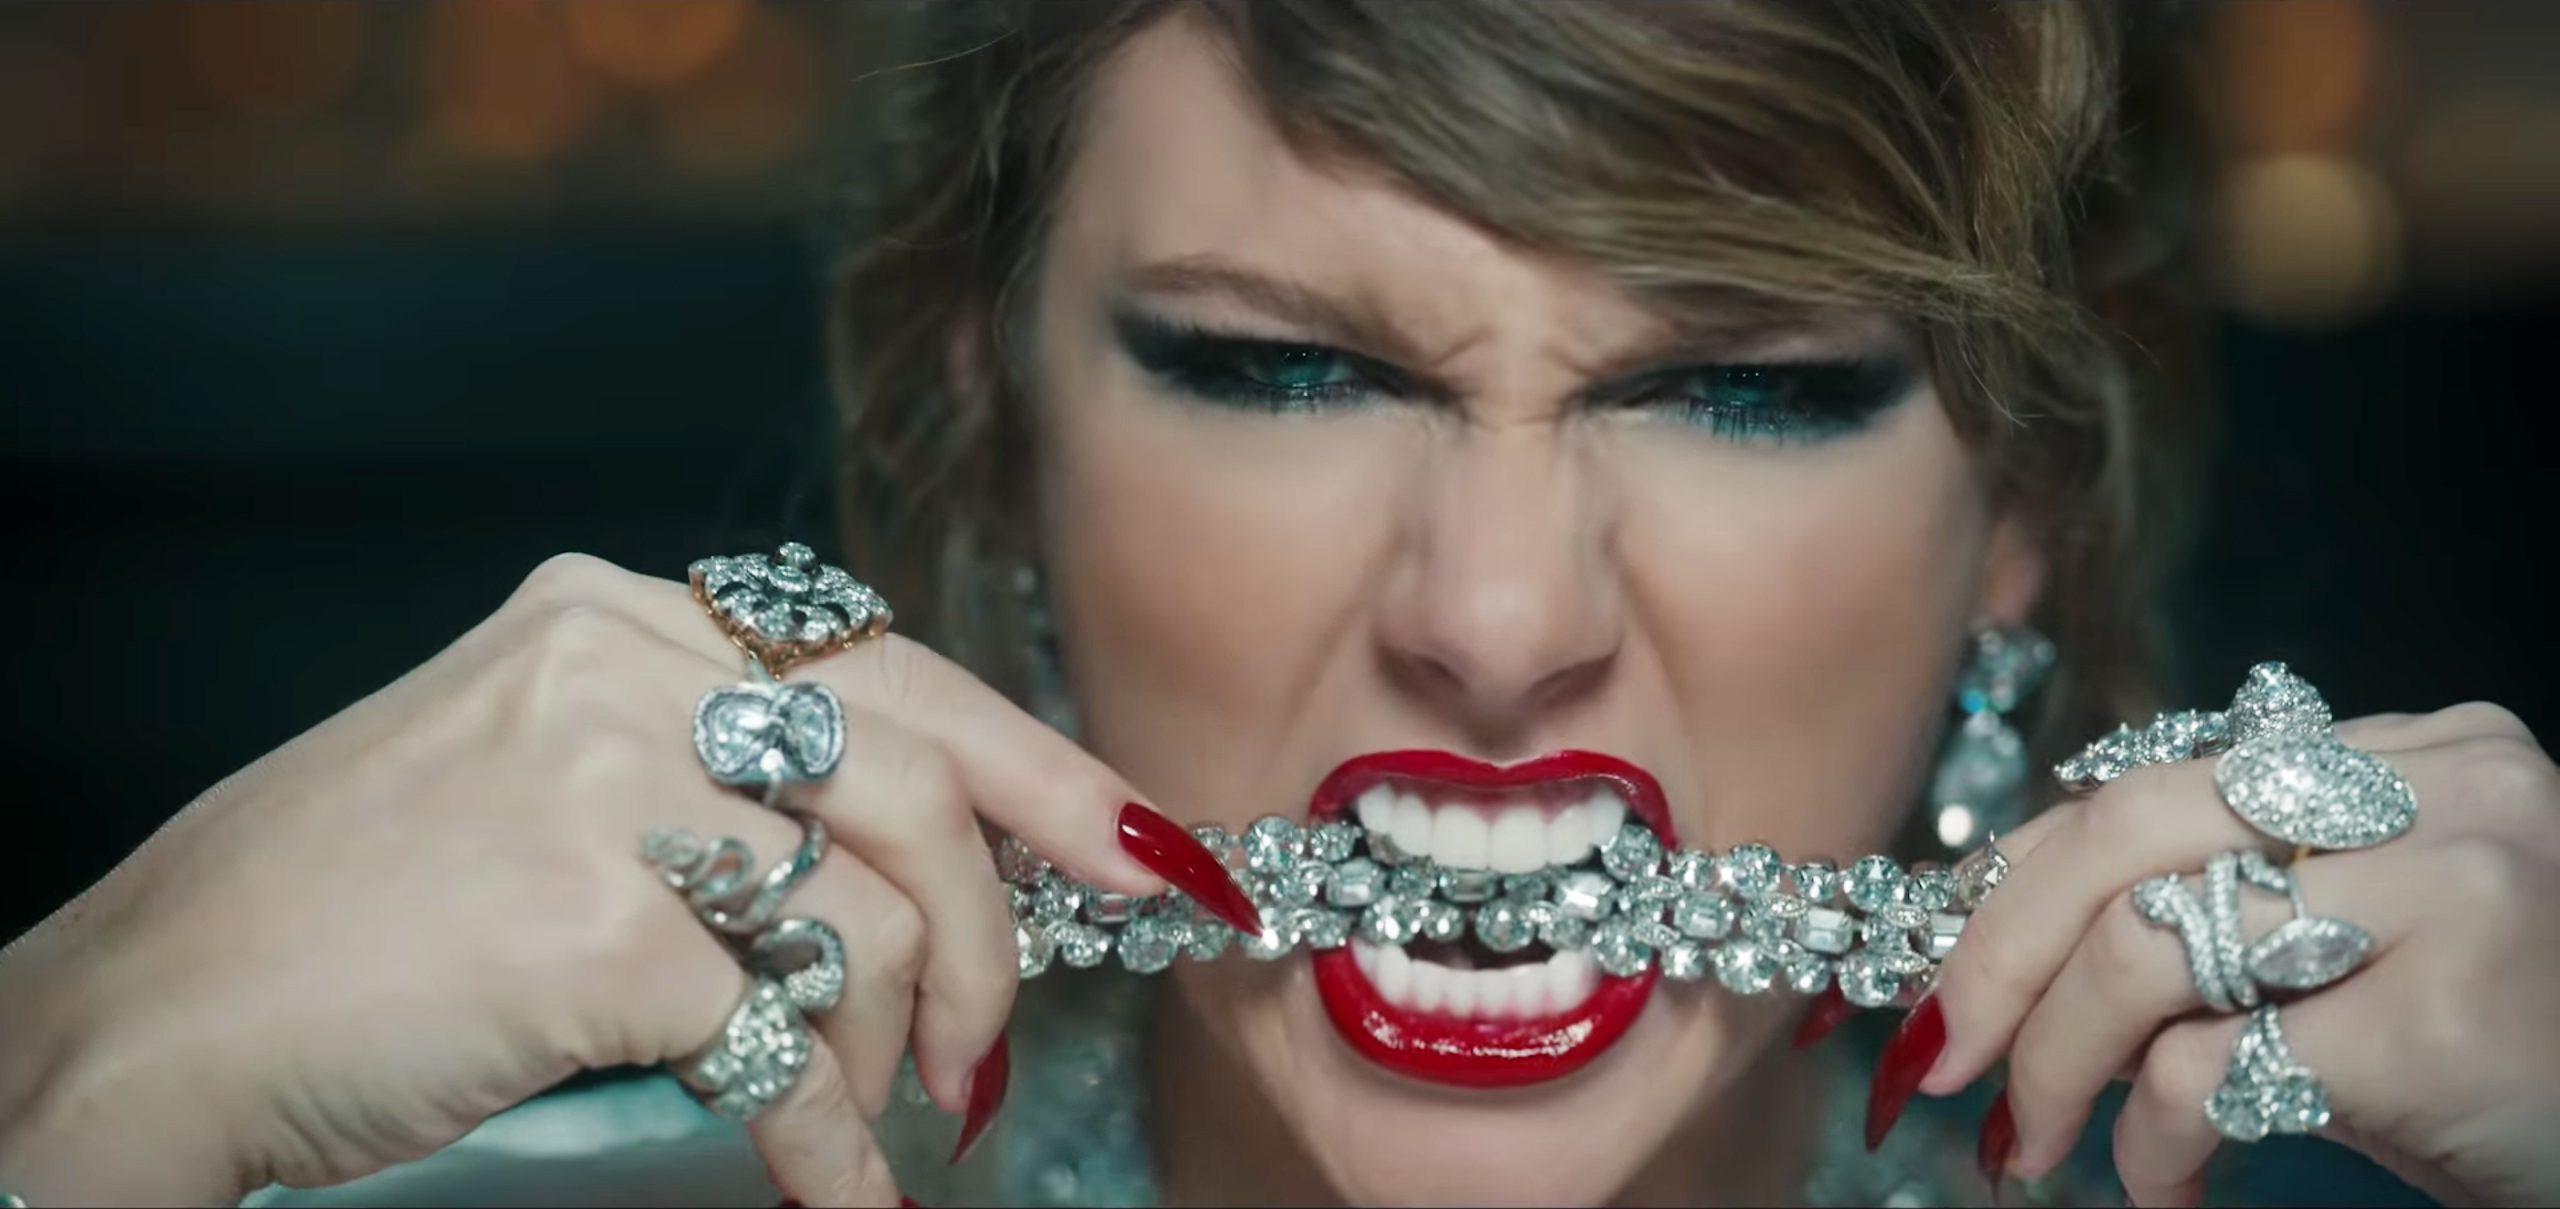 Taylor Swift's 'Look What You Made Me Do' Video Decoded - Rolling Stone